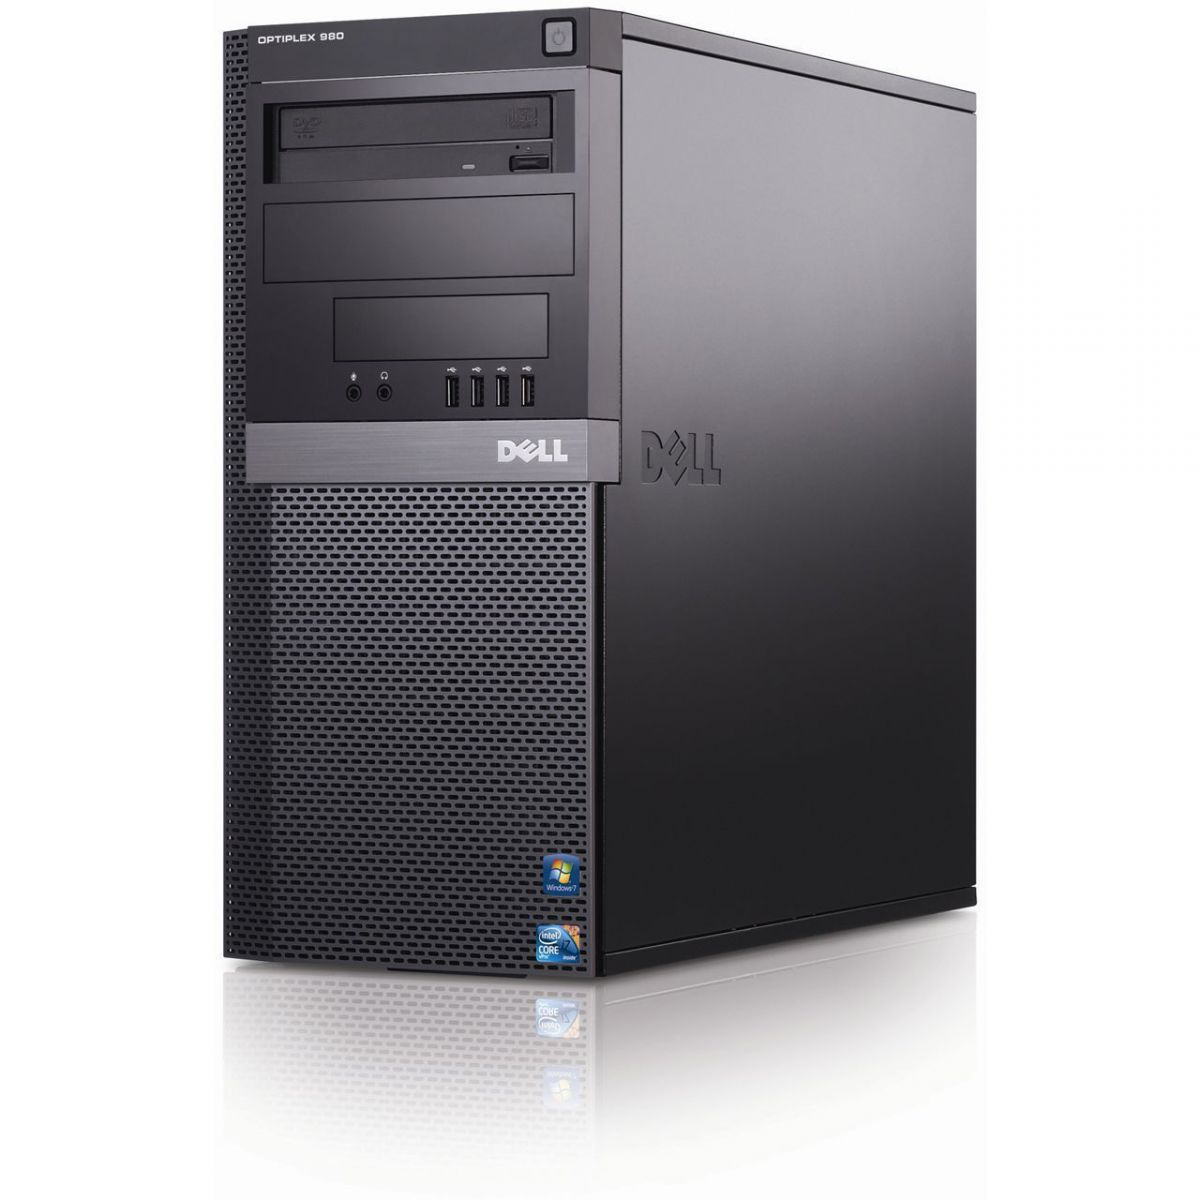 Dell OptiPlex 980 i5